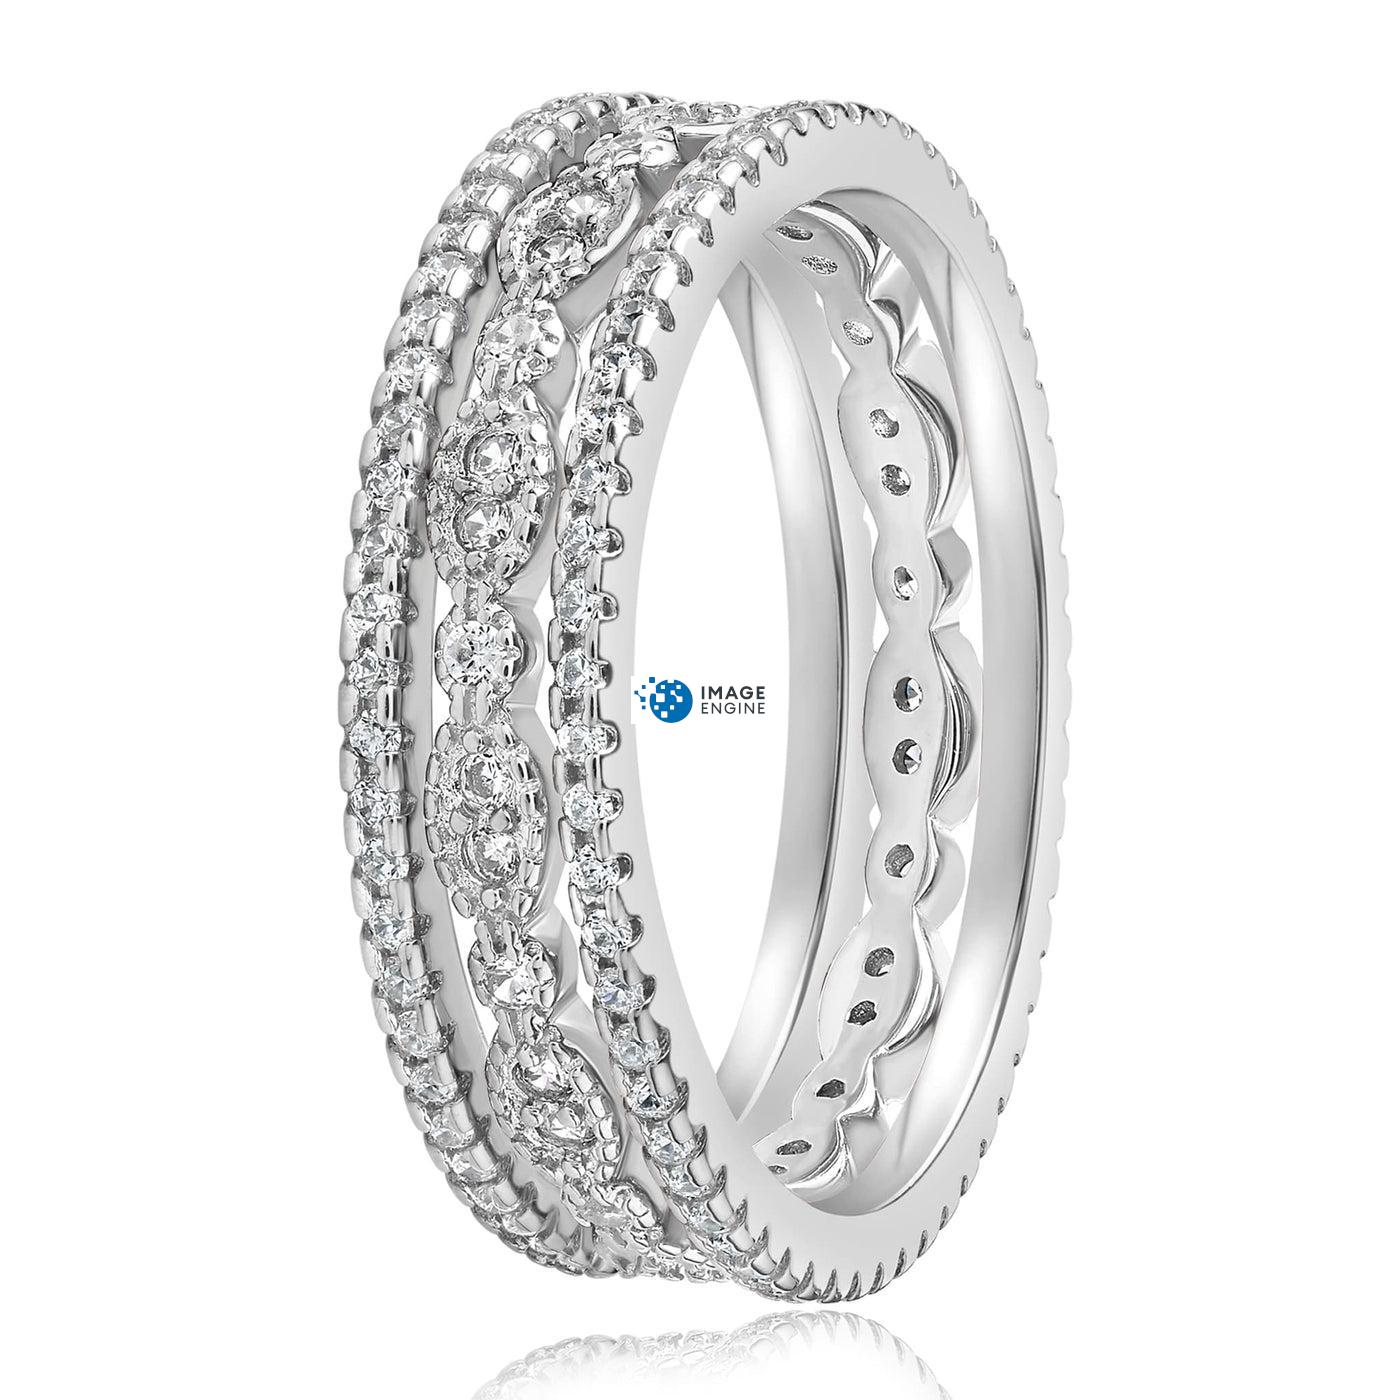 Juliana 3 Ring Set - Side View - 925 Sterling Silver